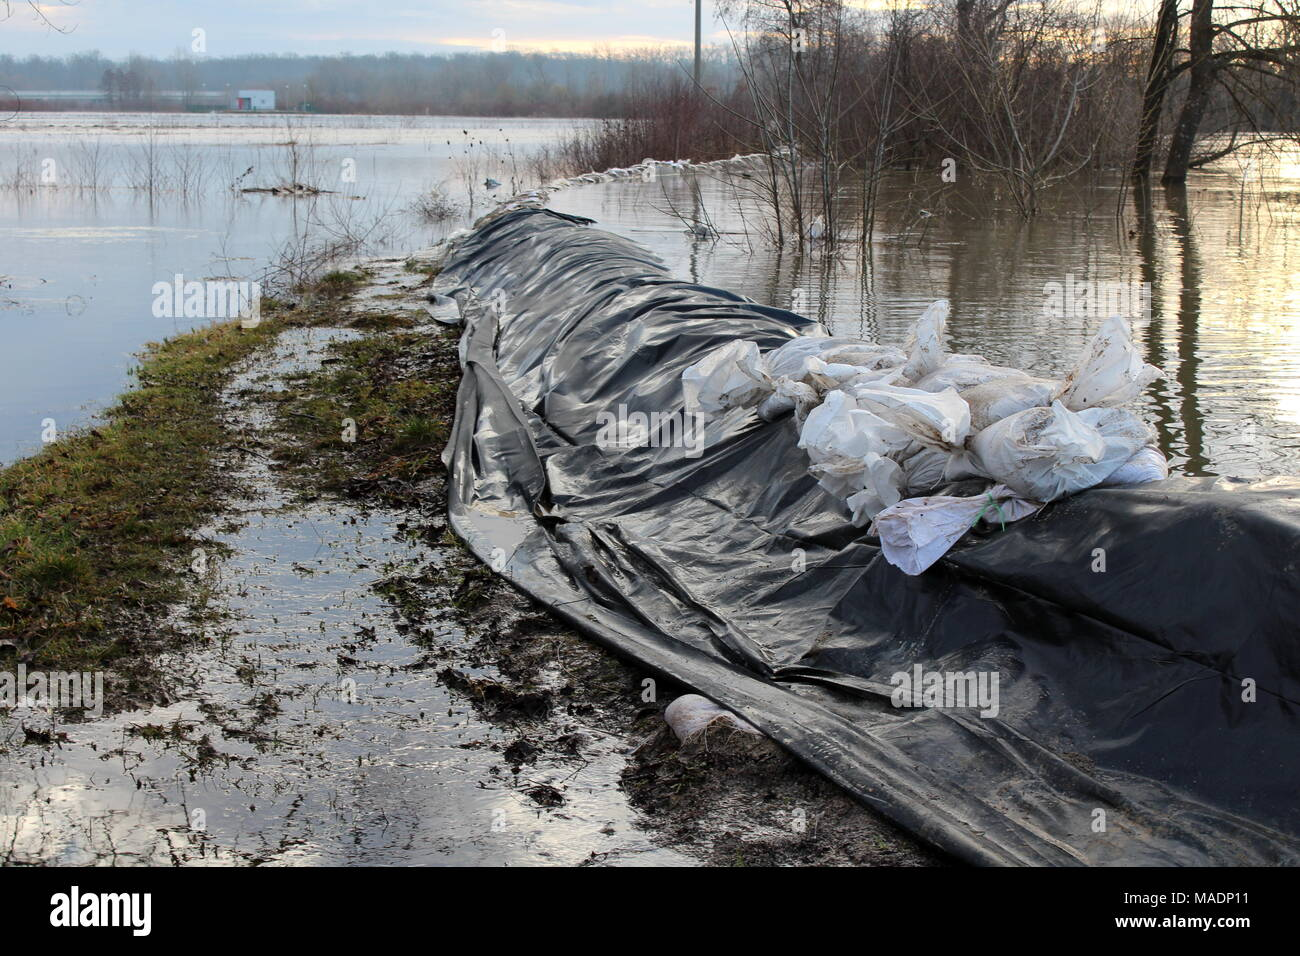 Sandbags flood protection barely holding strong river back during flood surrounded with grass and dried tree branches at sunset Stock Photo